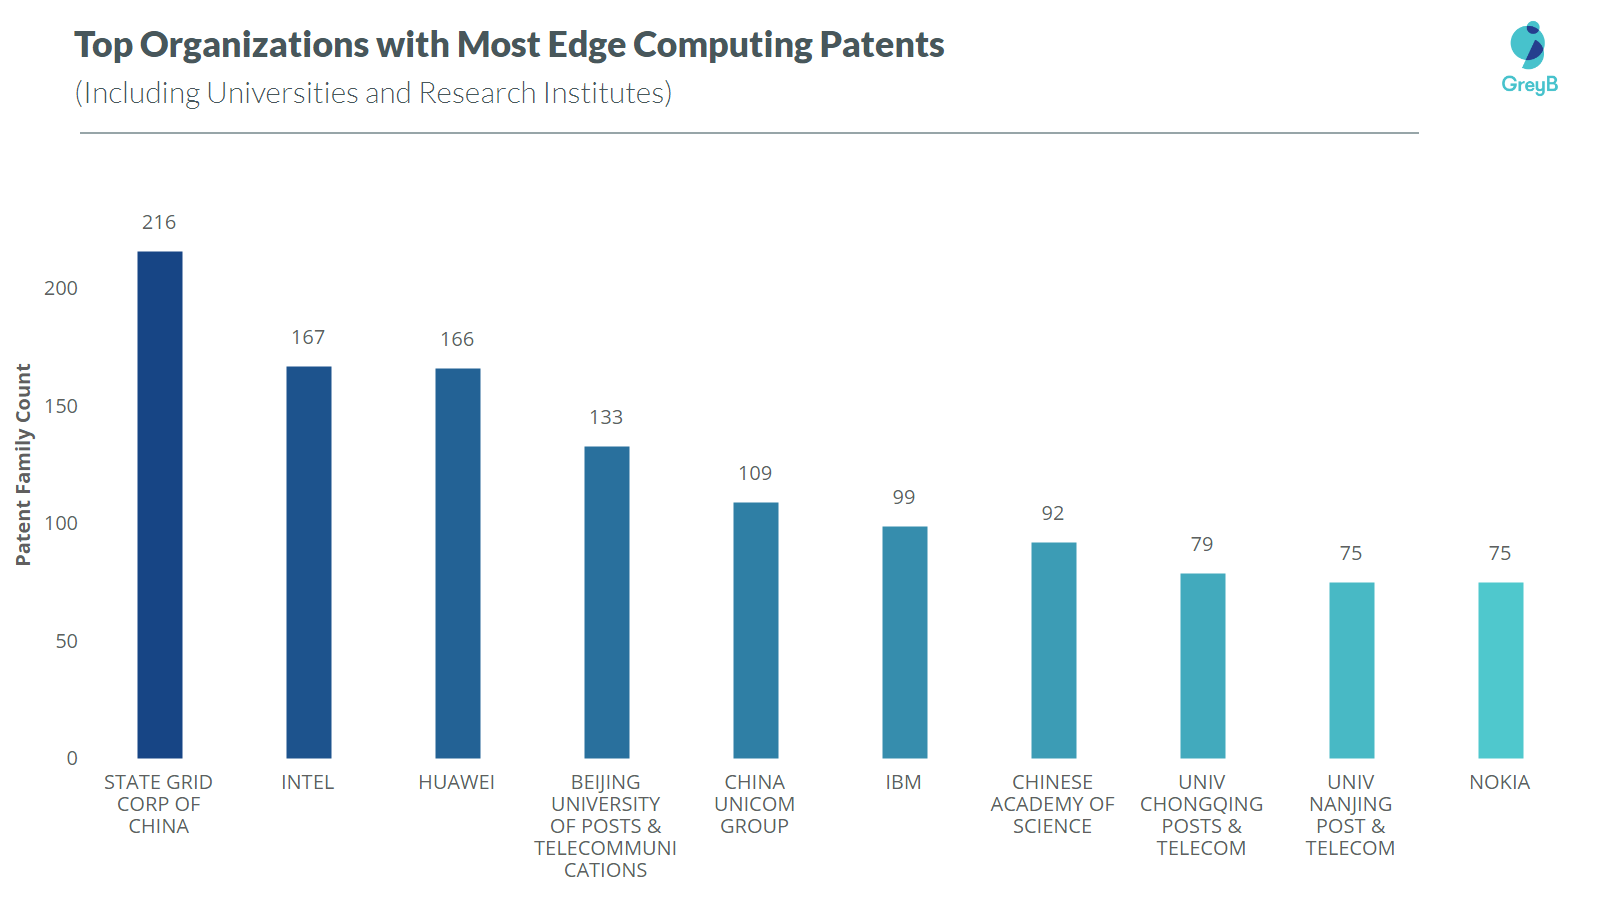 Top organization with edge computing patents